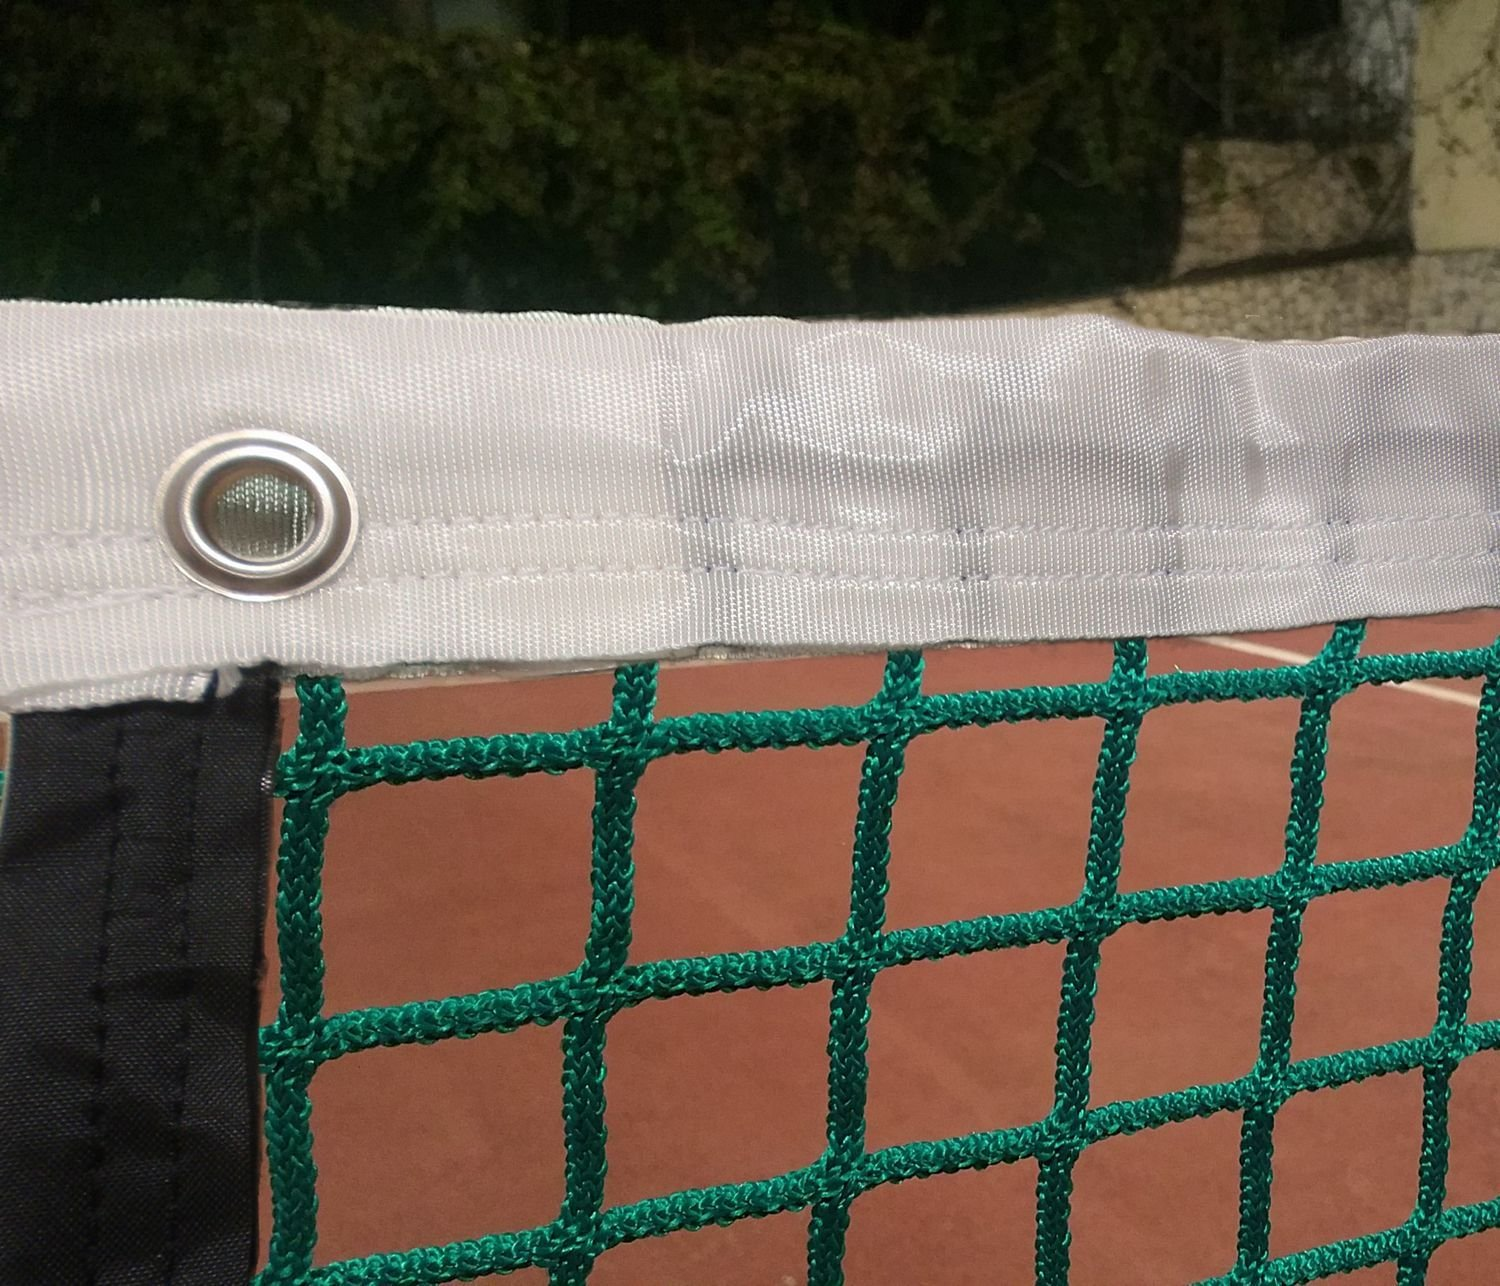 Redes Deportivas On Line Red de Padel. PP Sin Nudos de 3 mm ...